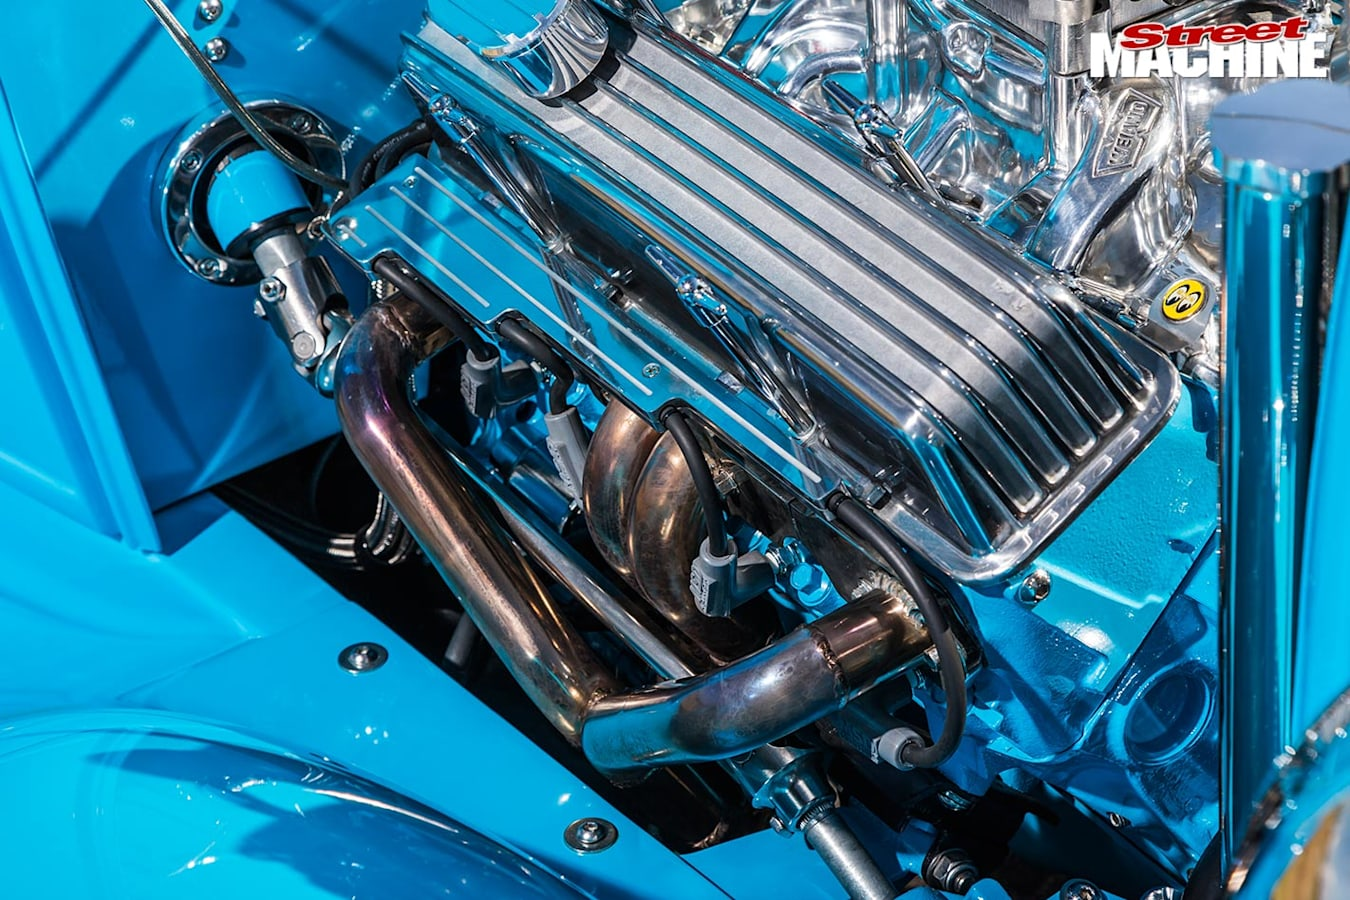 Ford Roadster engine